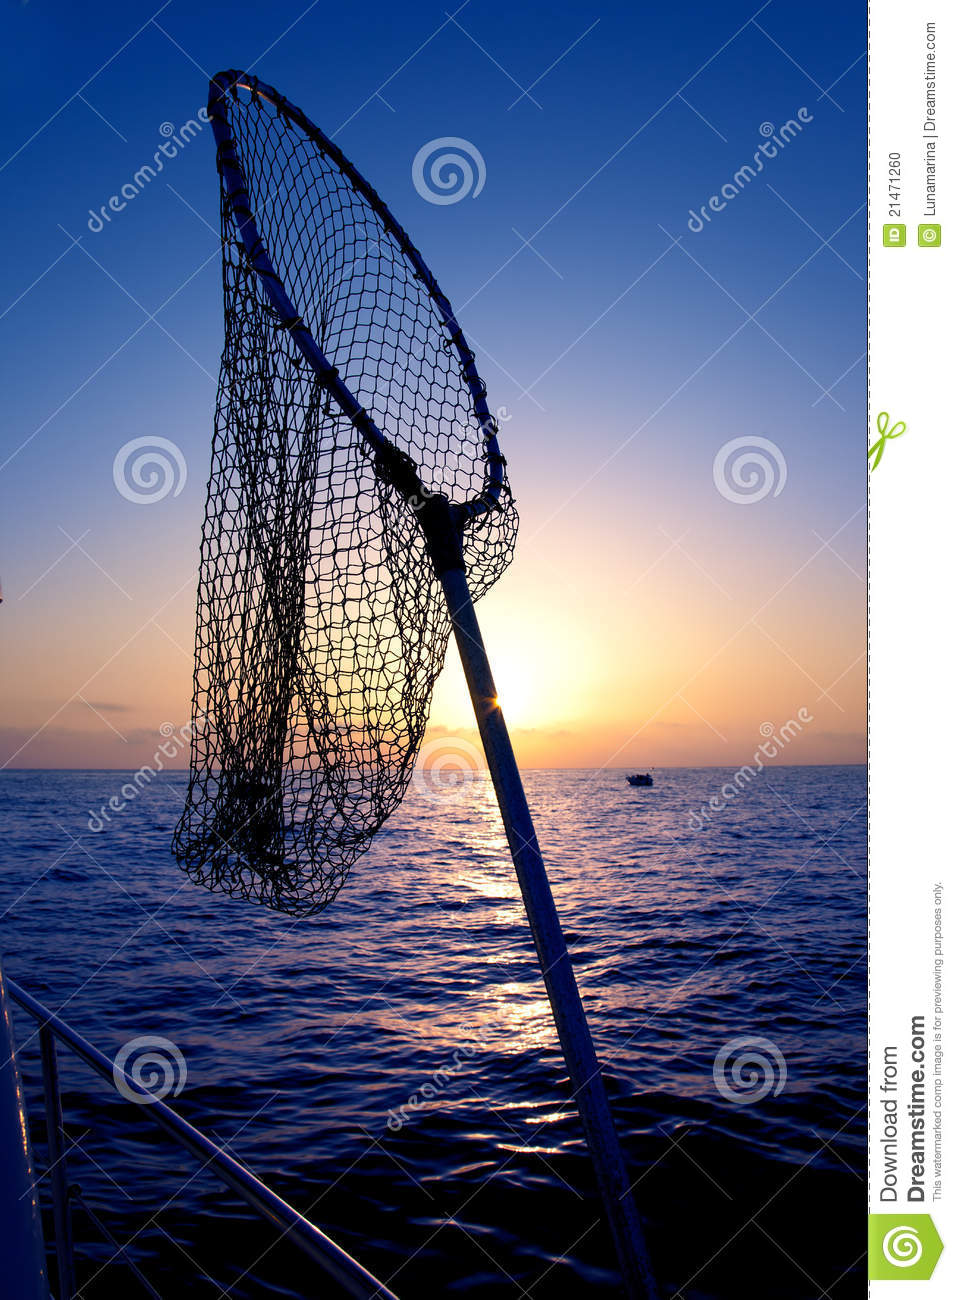 Dip net in boat fishing on sunrise saltwater stock photo for Dip nets for fishing